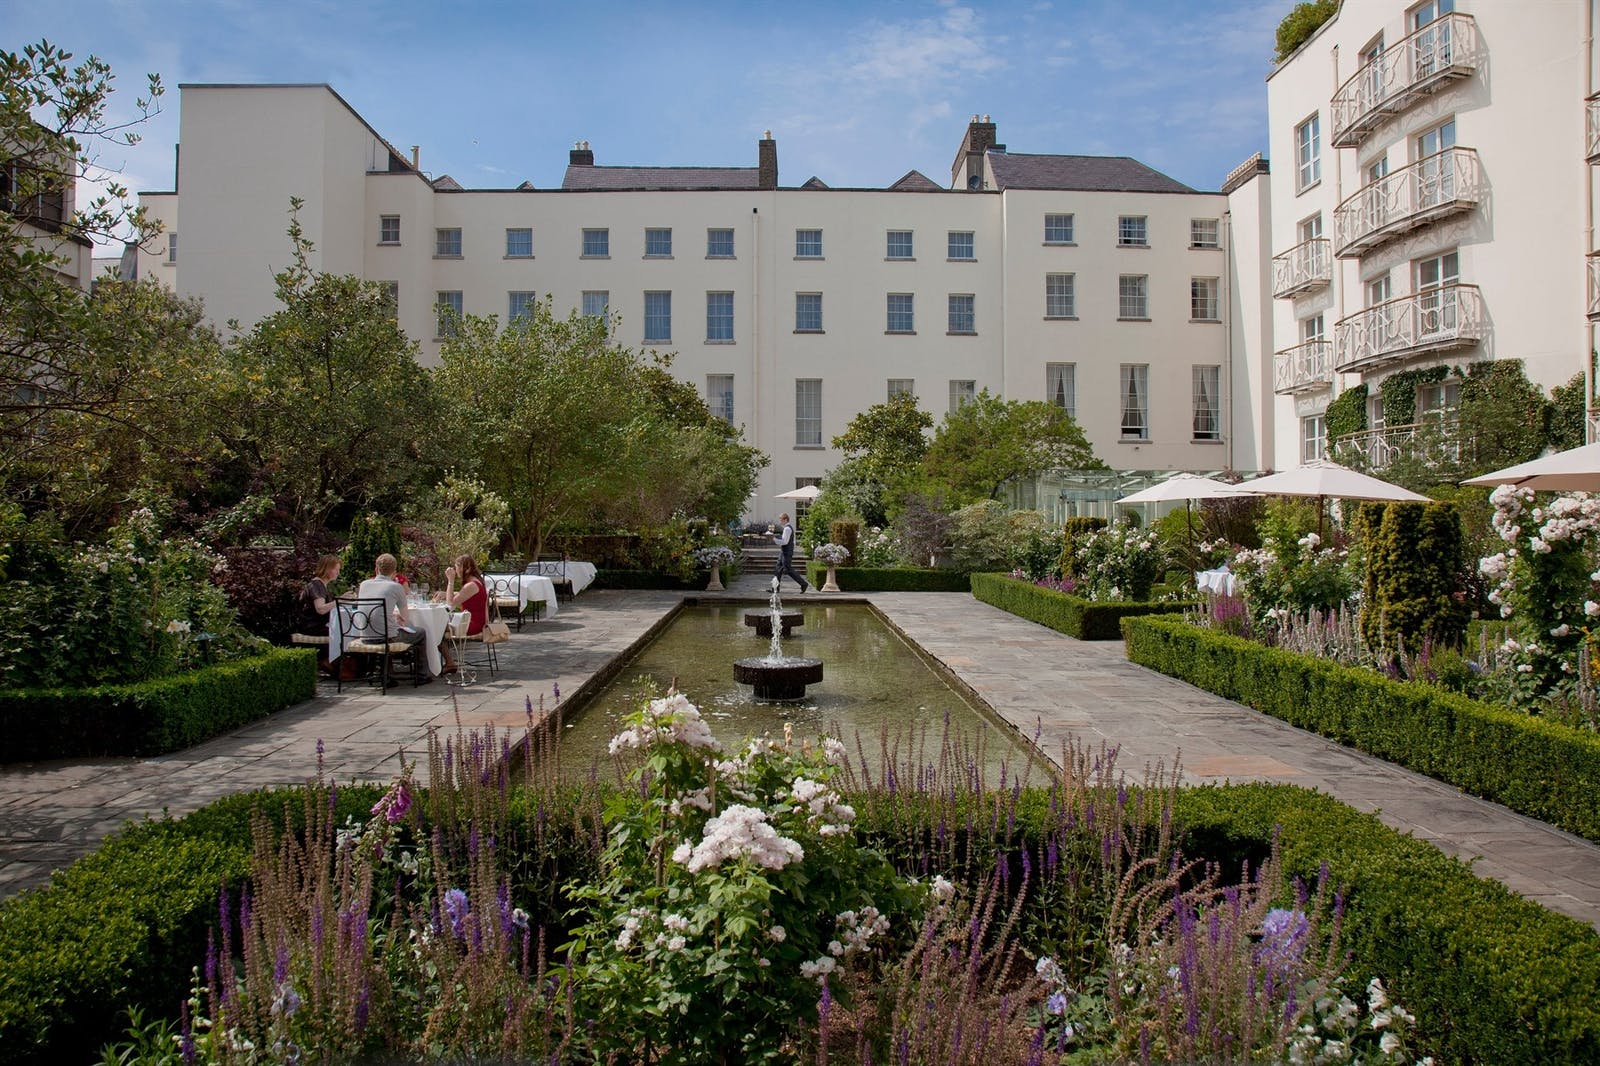 The Gardens at the Merrion